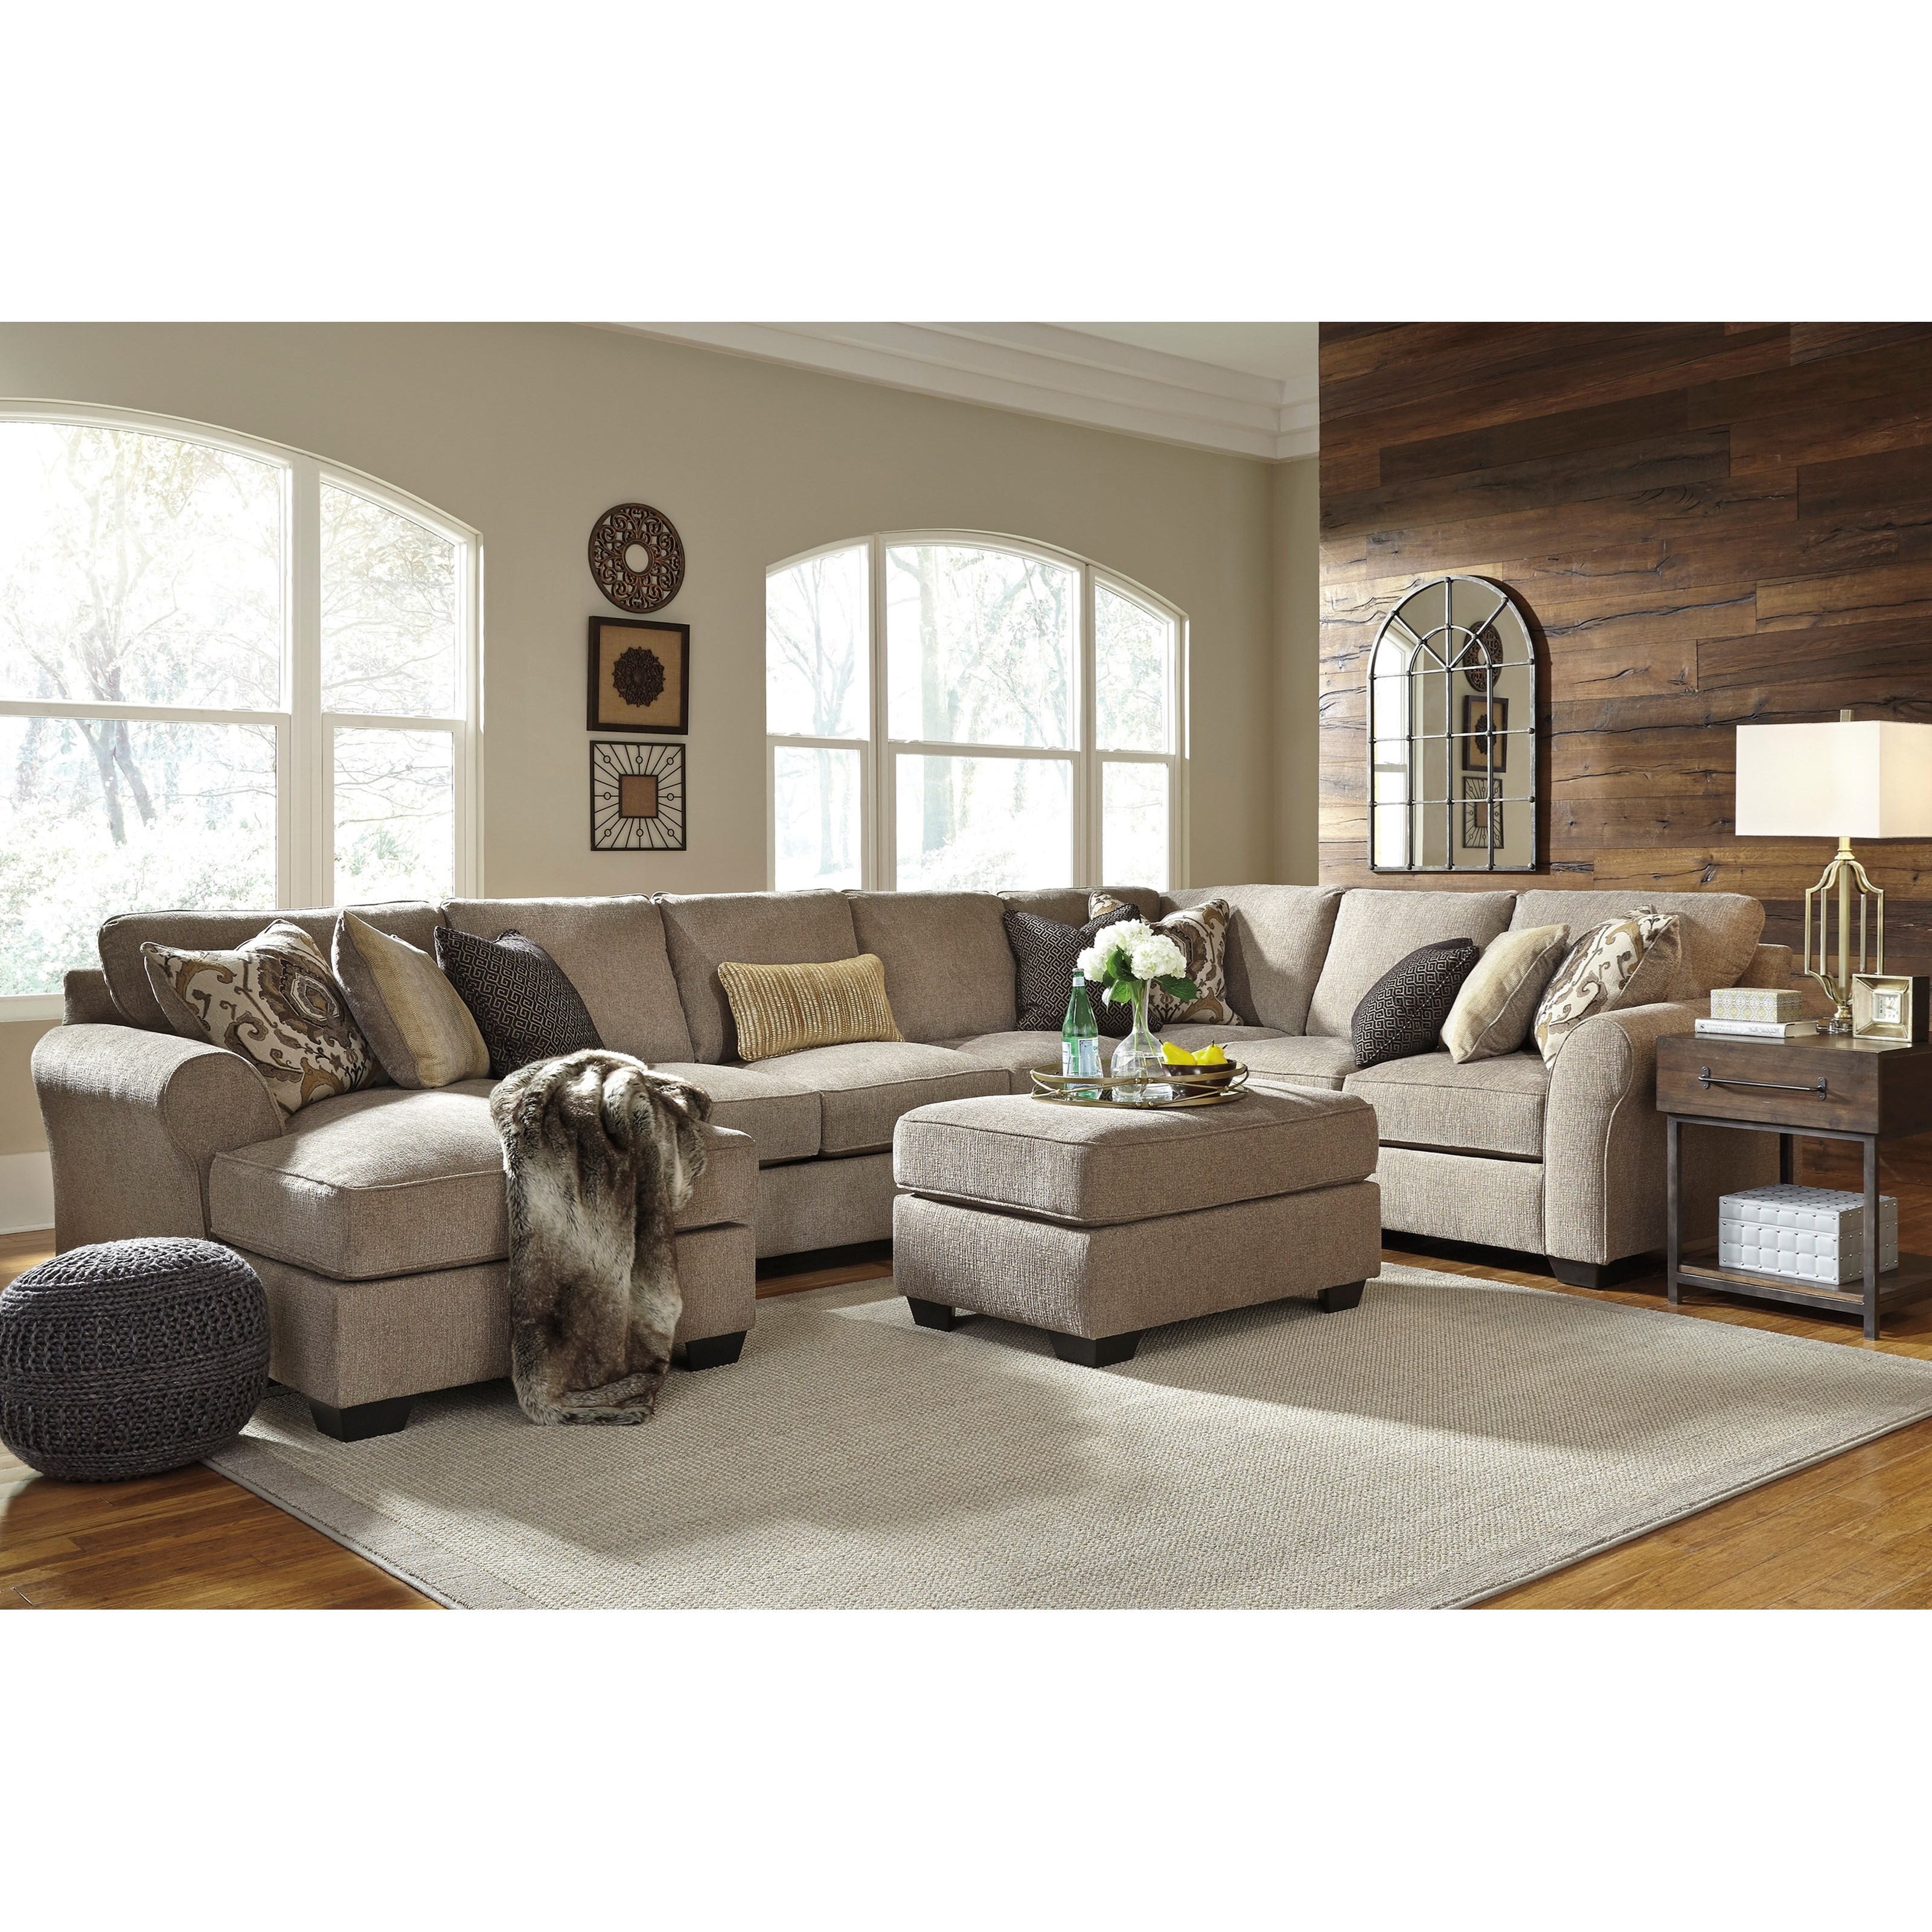 Pantomine 4-Piece Sectional with Ottoman by Benchcraft at Miller Waldrop Furniture and Decor